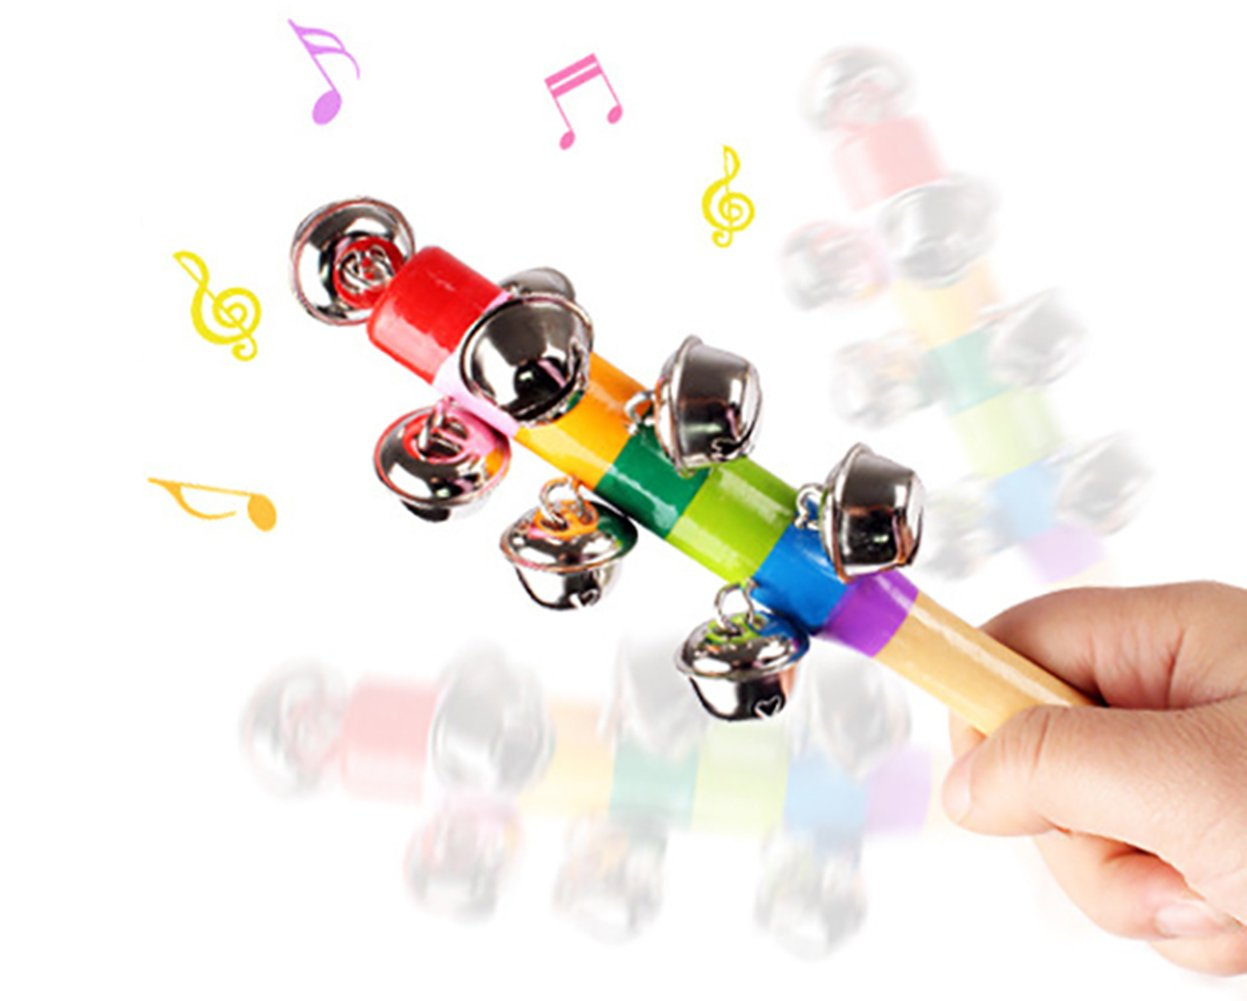 Scrox 1Pcs Lovely Children Boys Girls Musical Toys Colorful Orff instruments Colorful Rattles Rainbow Pram Crib Handle Wooden Bell Stick Shaker Rattle Toy Music Developmental Toys,18CM